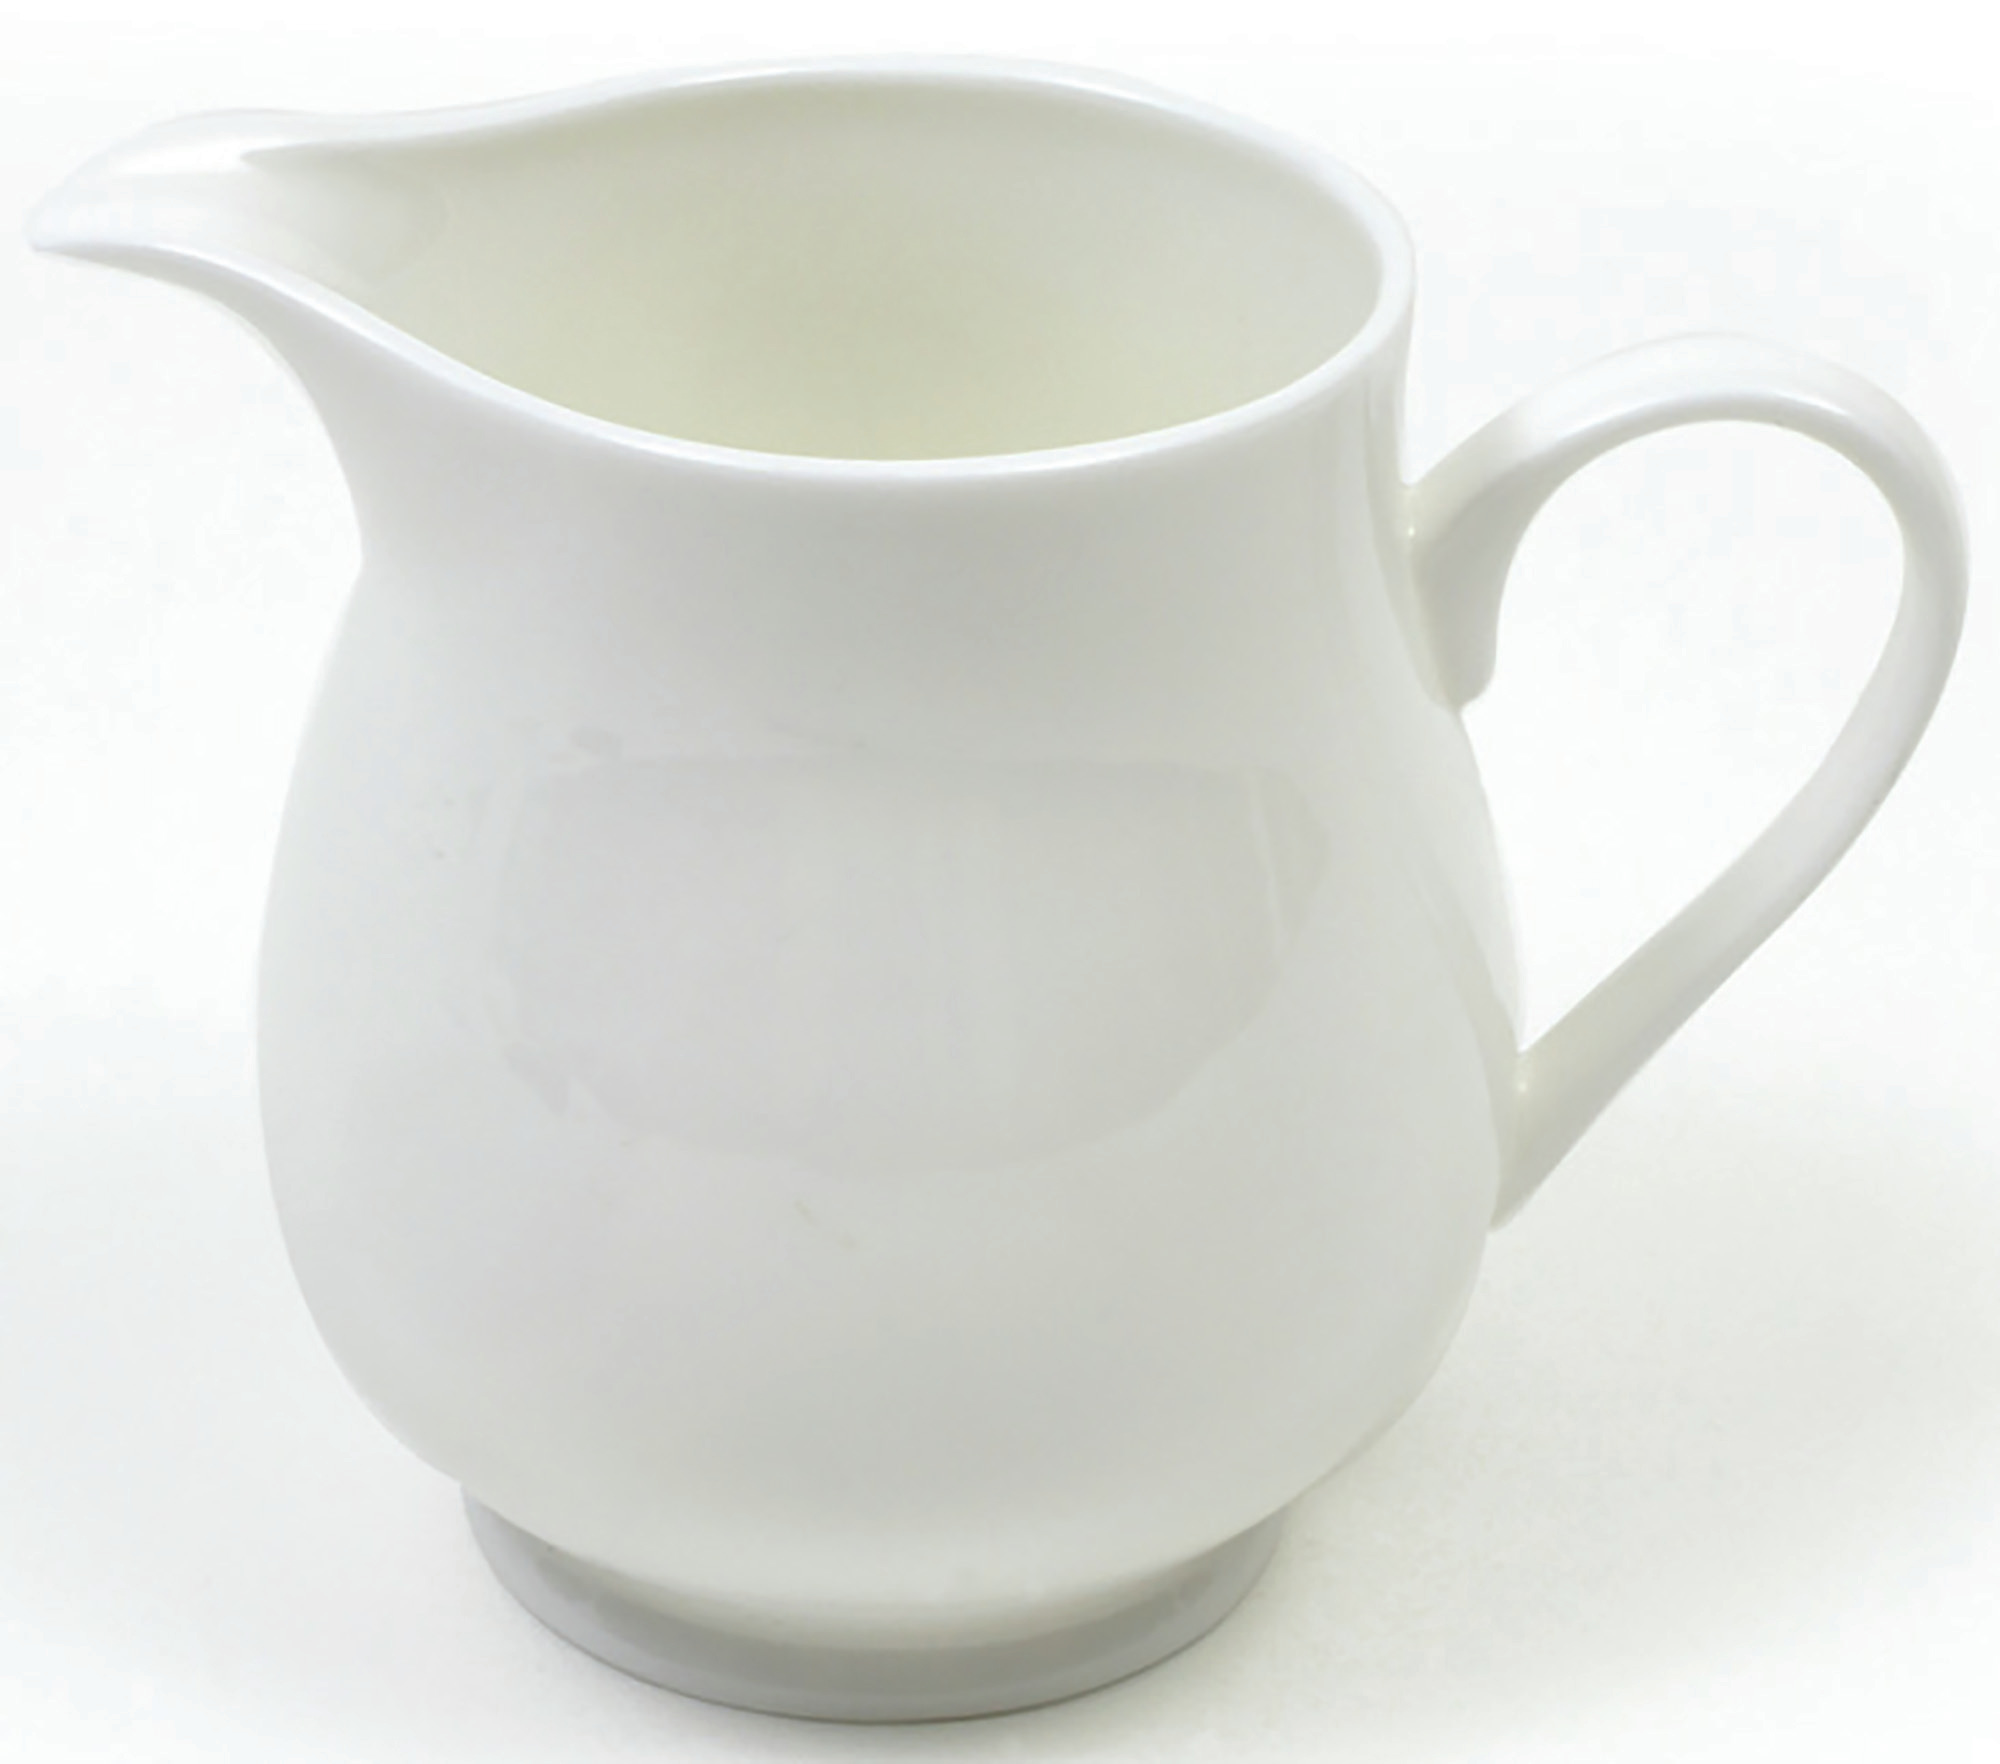 Maxwell & Williams Cashmere Rnd Creamer